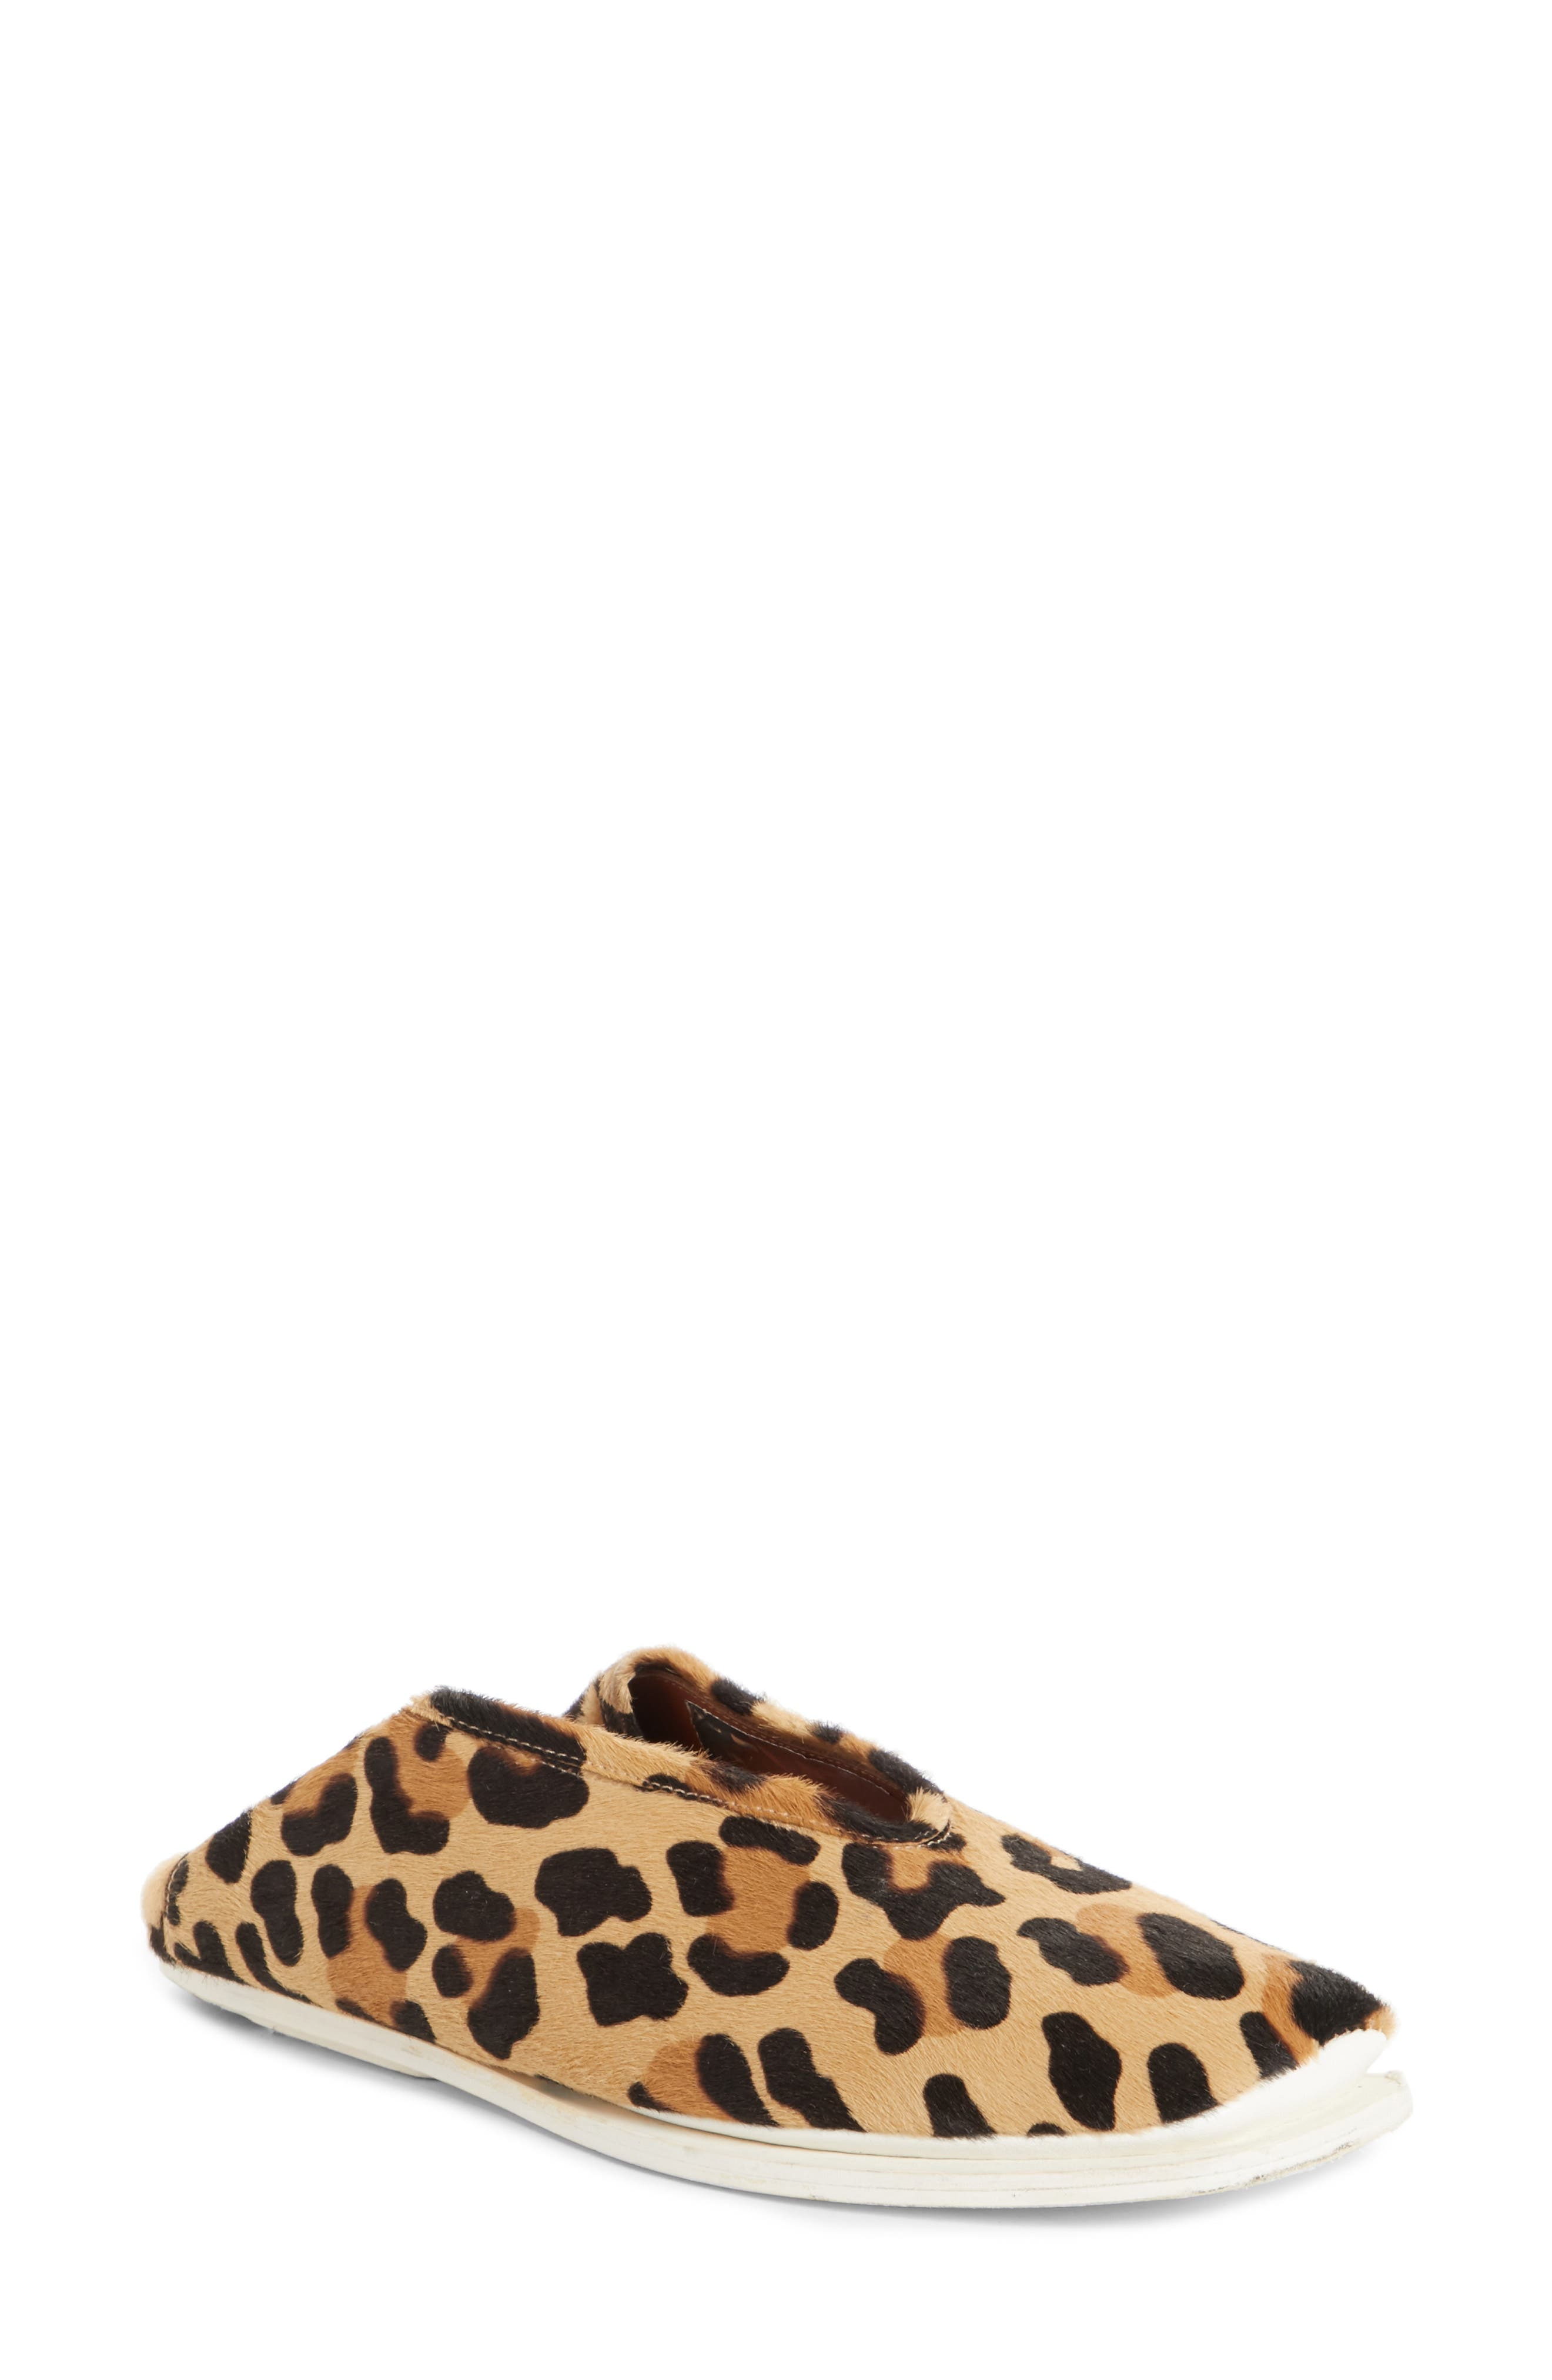 PSWL Genuine Calf Hair Convertible Loafer,                         Main,                         color, Leopard Print